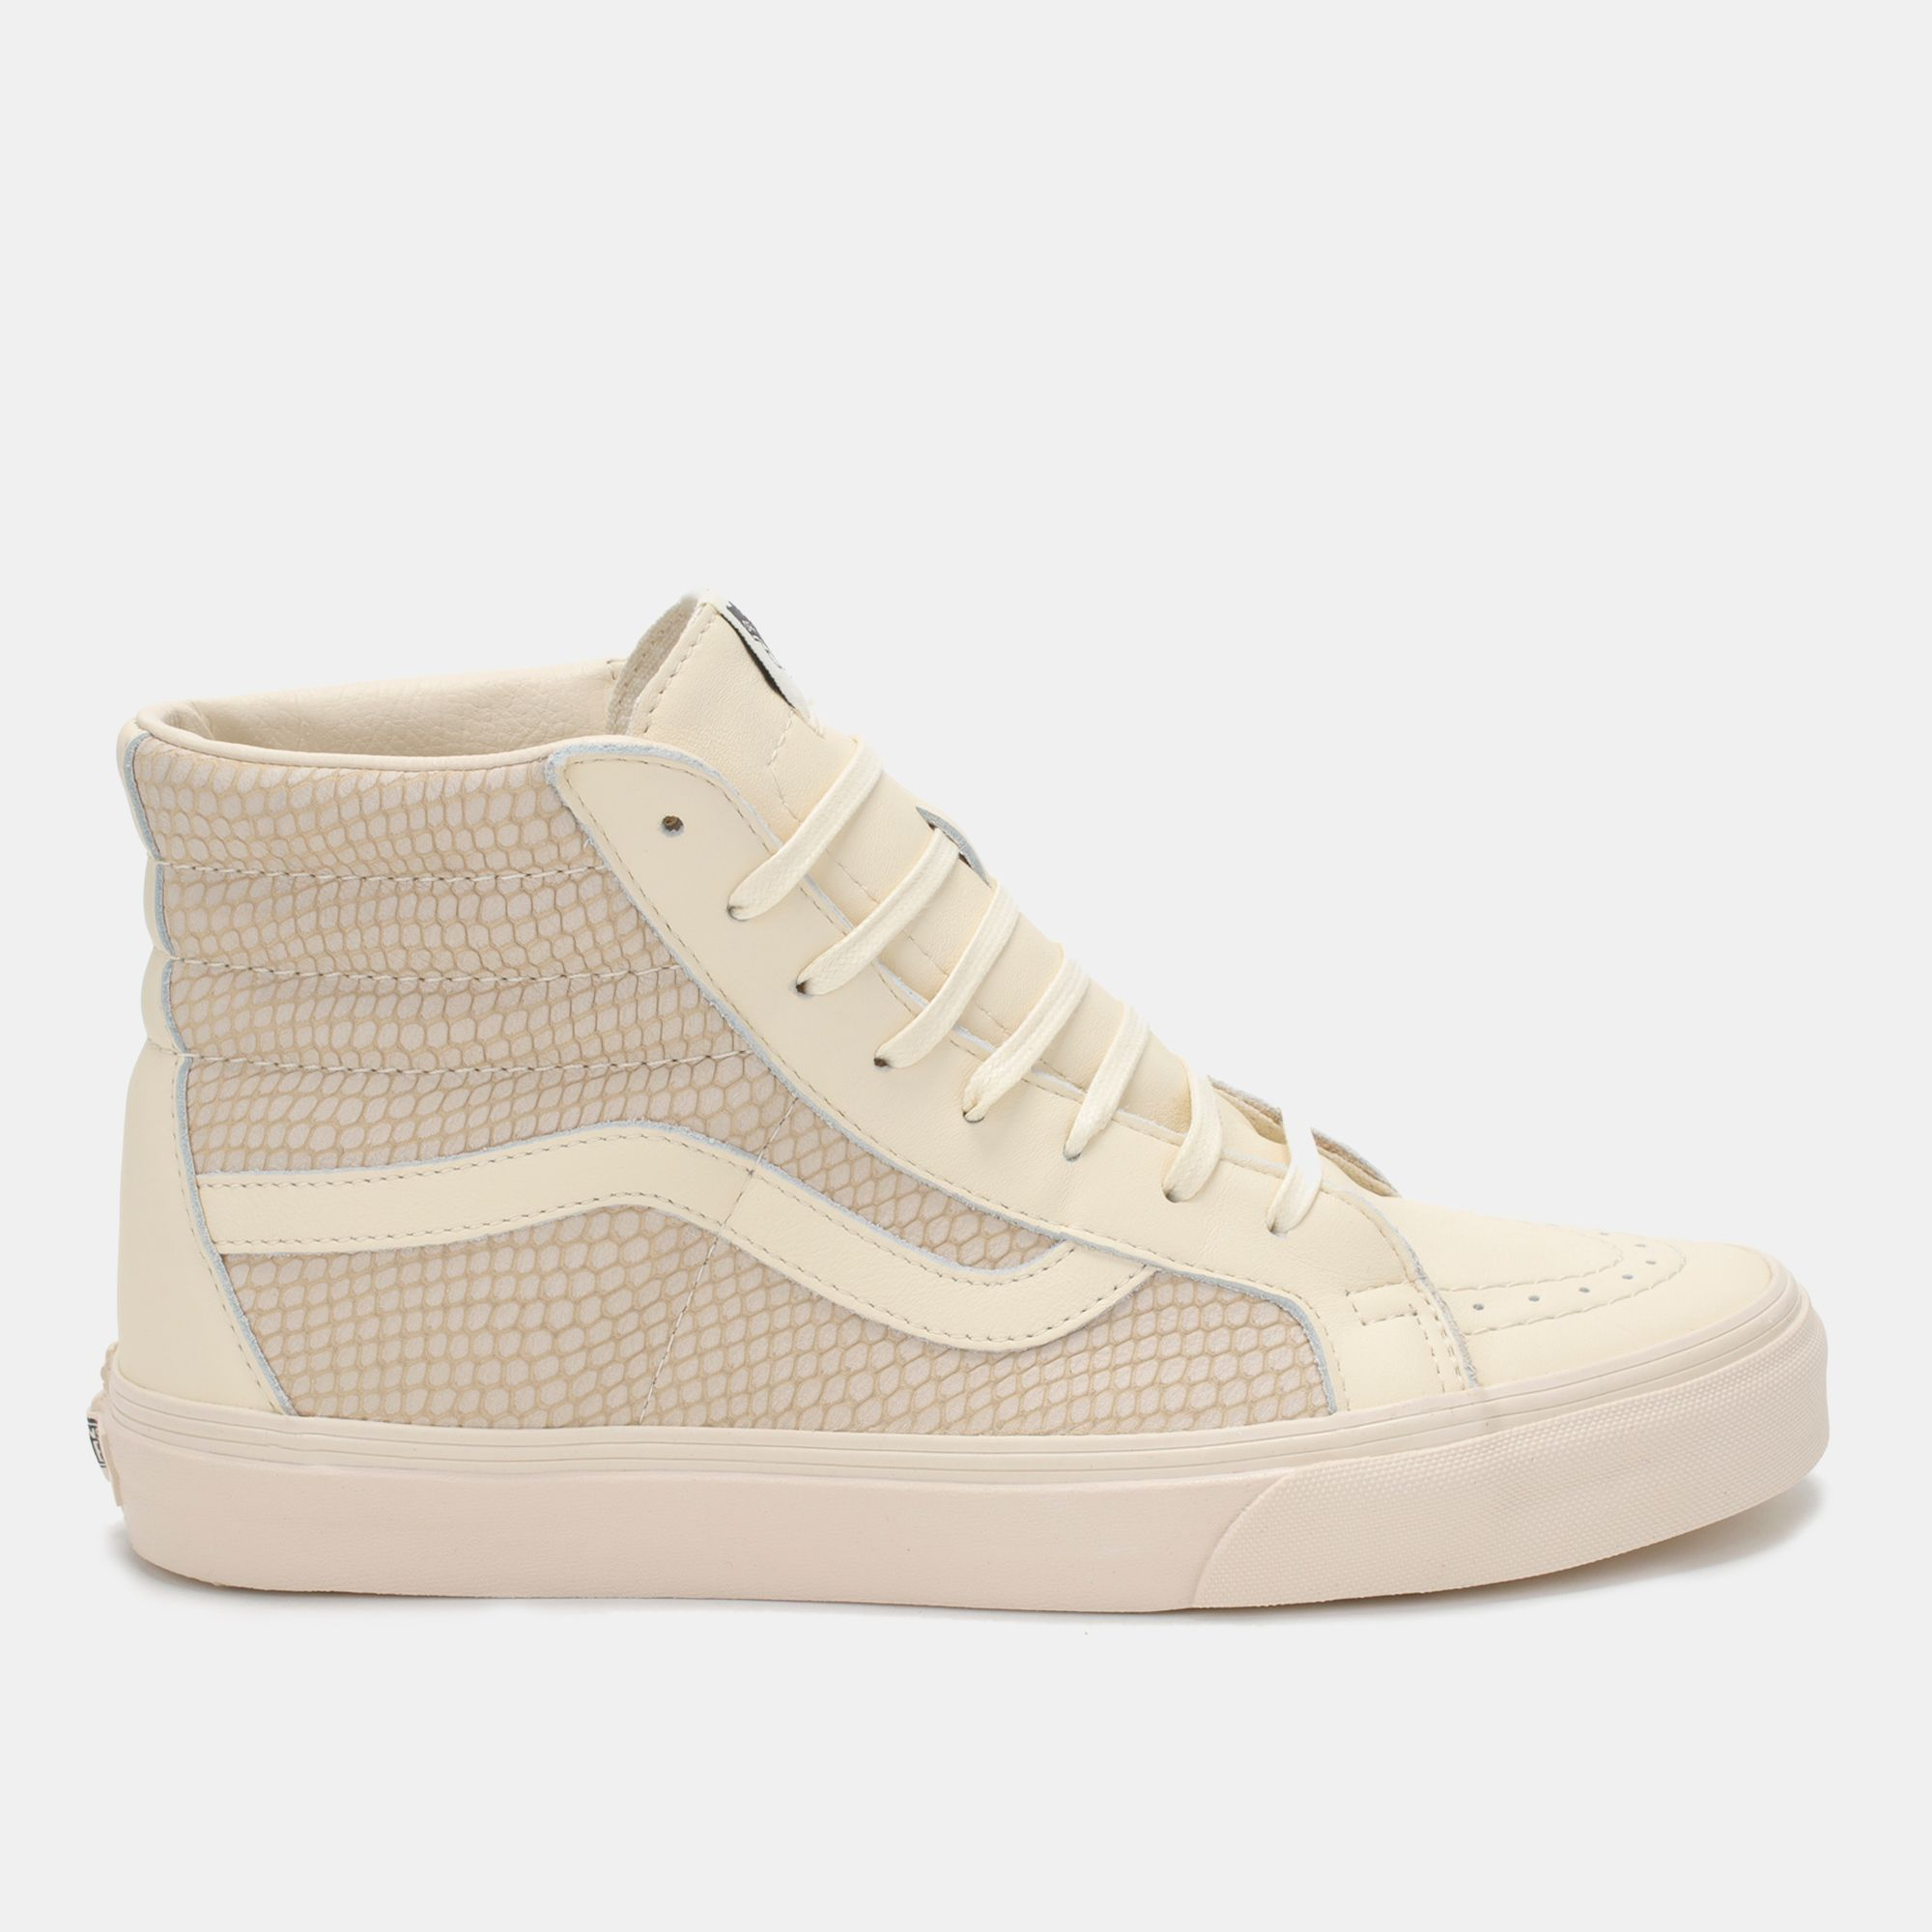 c5fd08f44d Shop Beige Vans Snake Leather Sk8-Hi Reissue Shoe for Mens by Vans